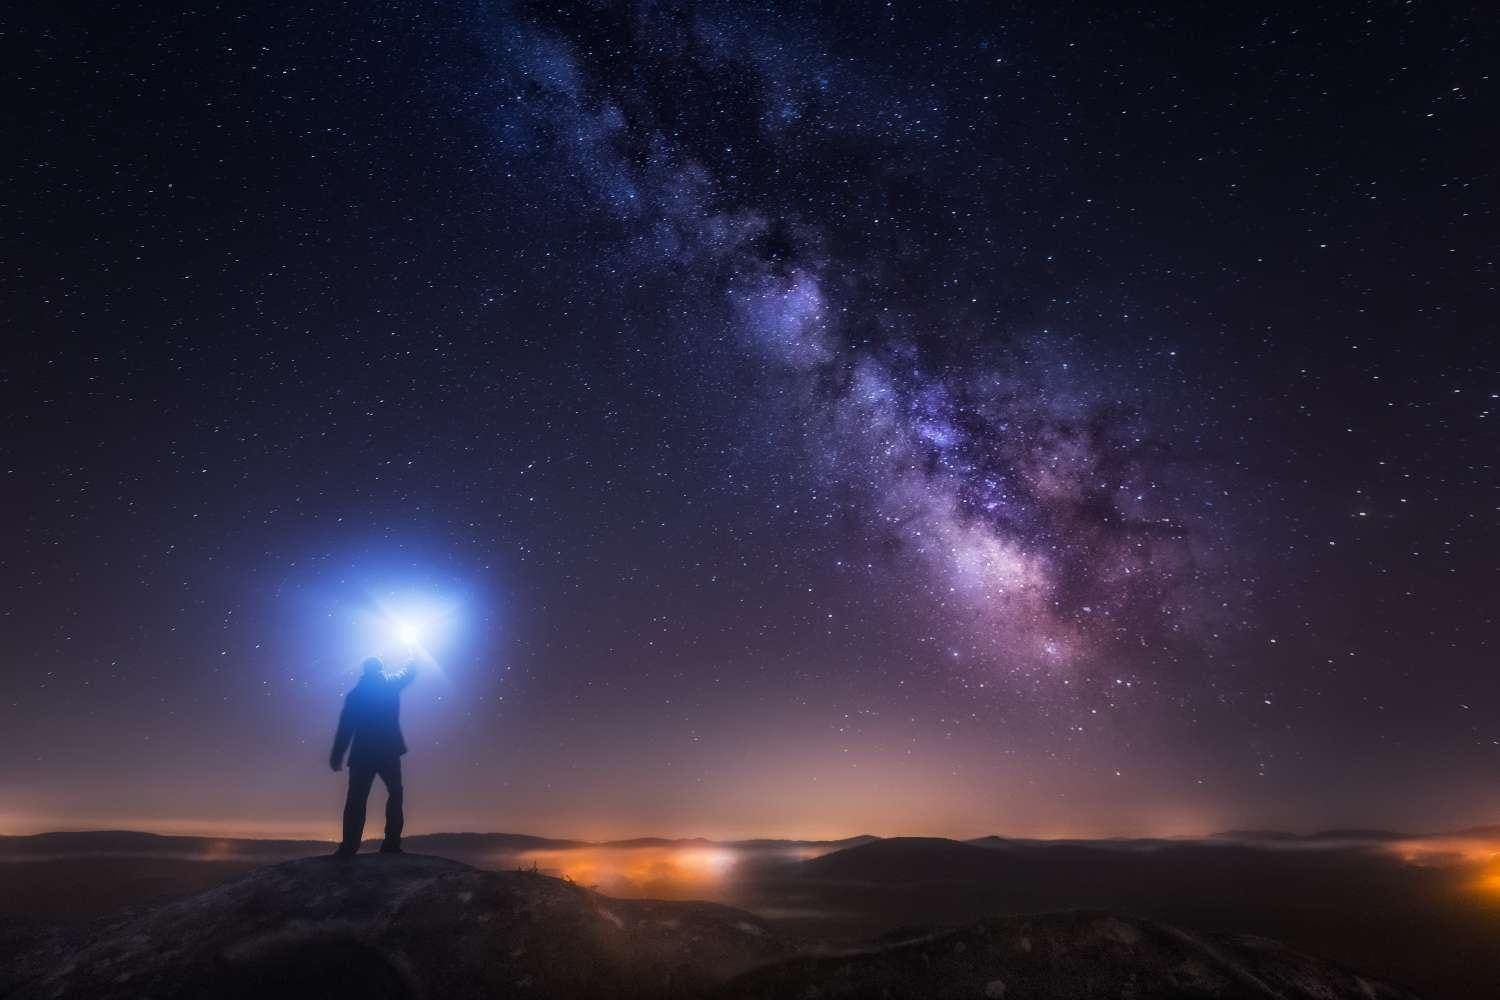 Man looking up at milky way